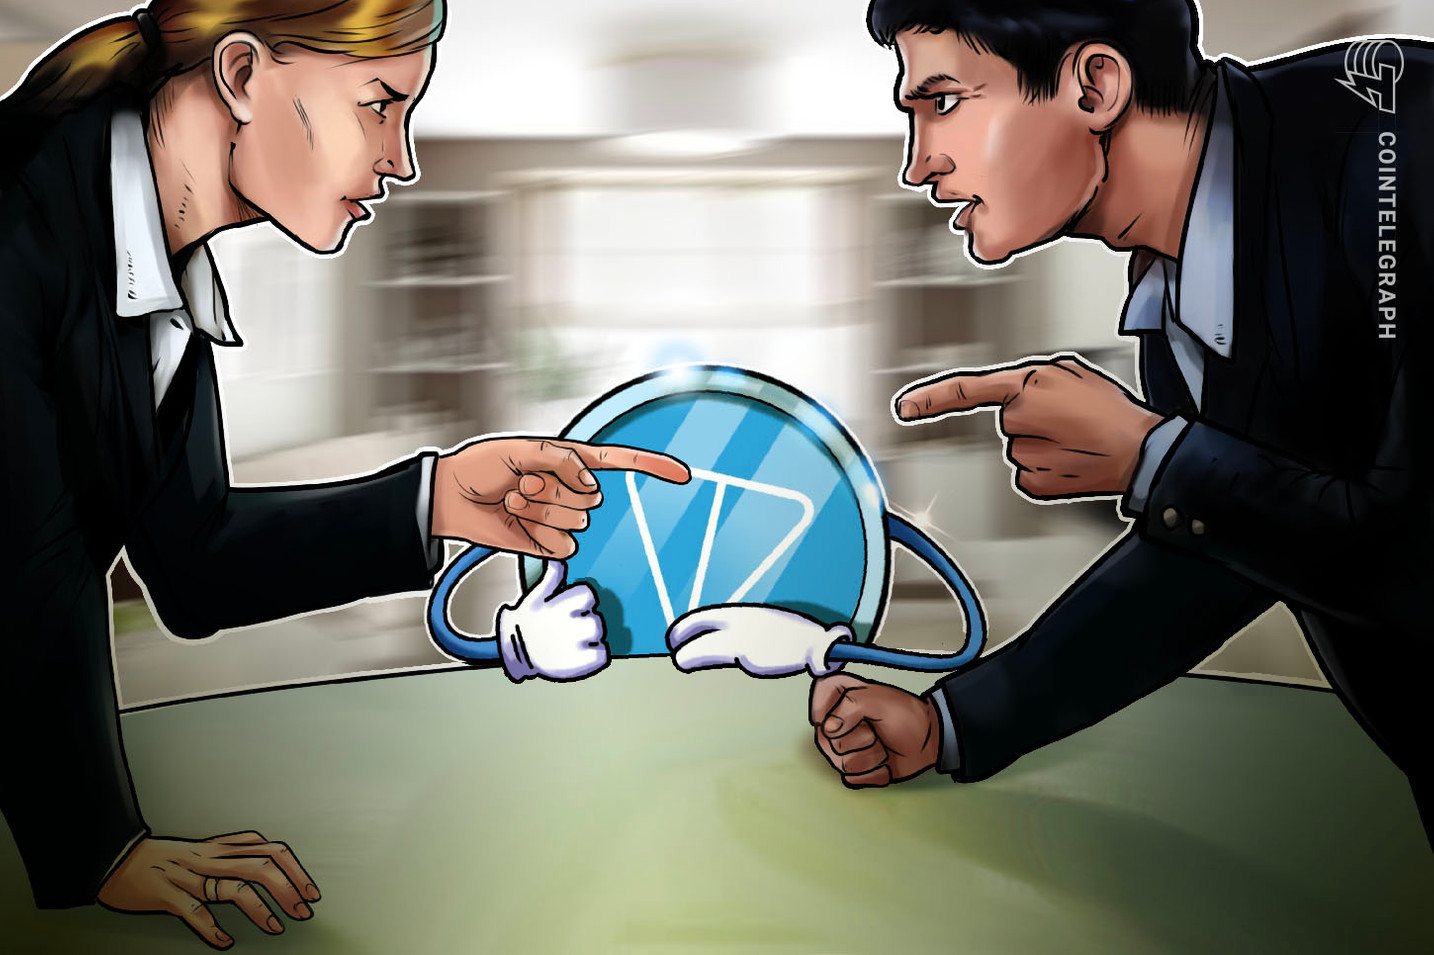 Redactions Granted in Telegram Case to Protect ICO Participants